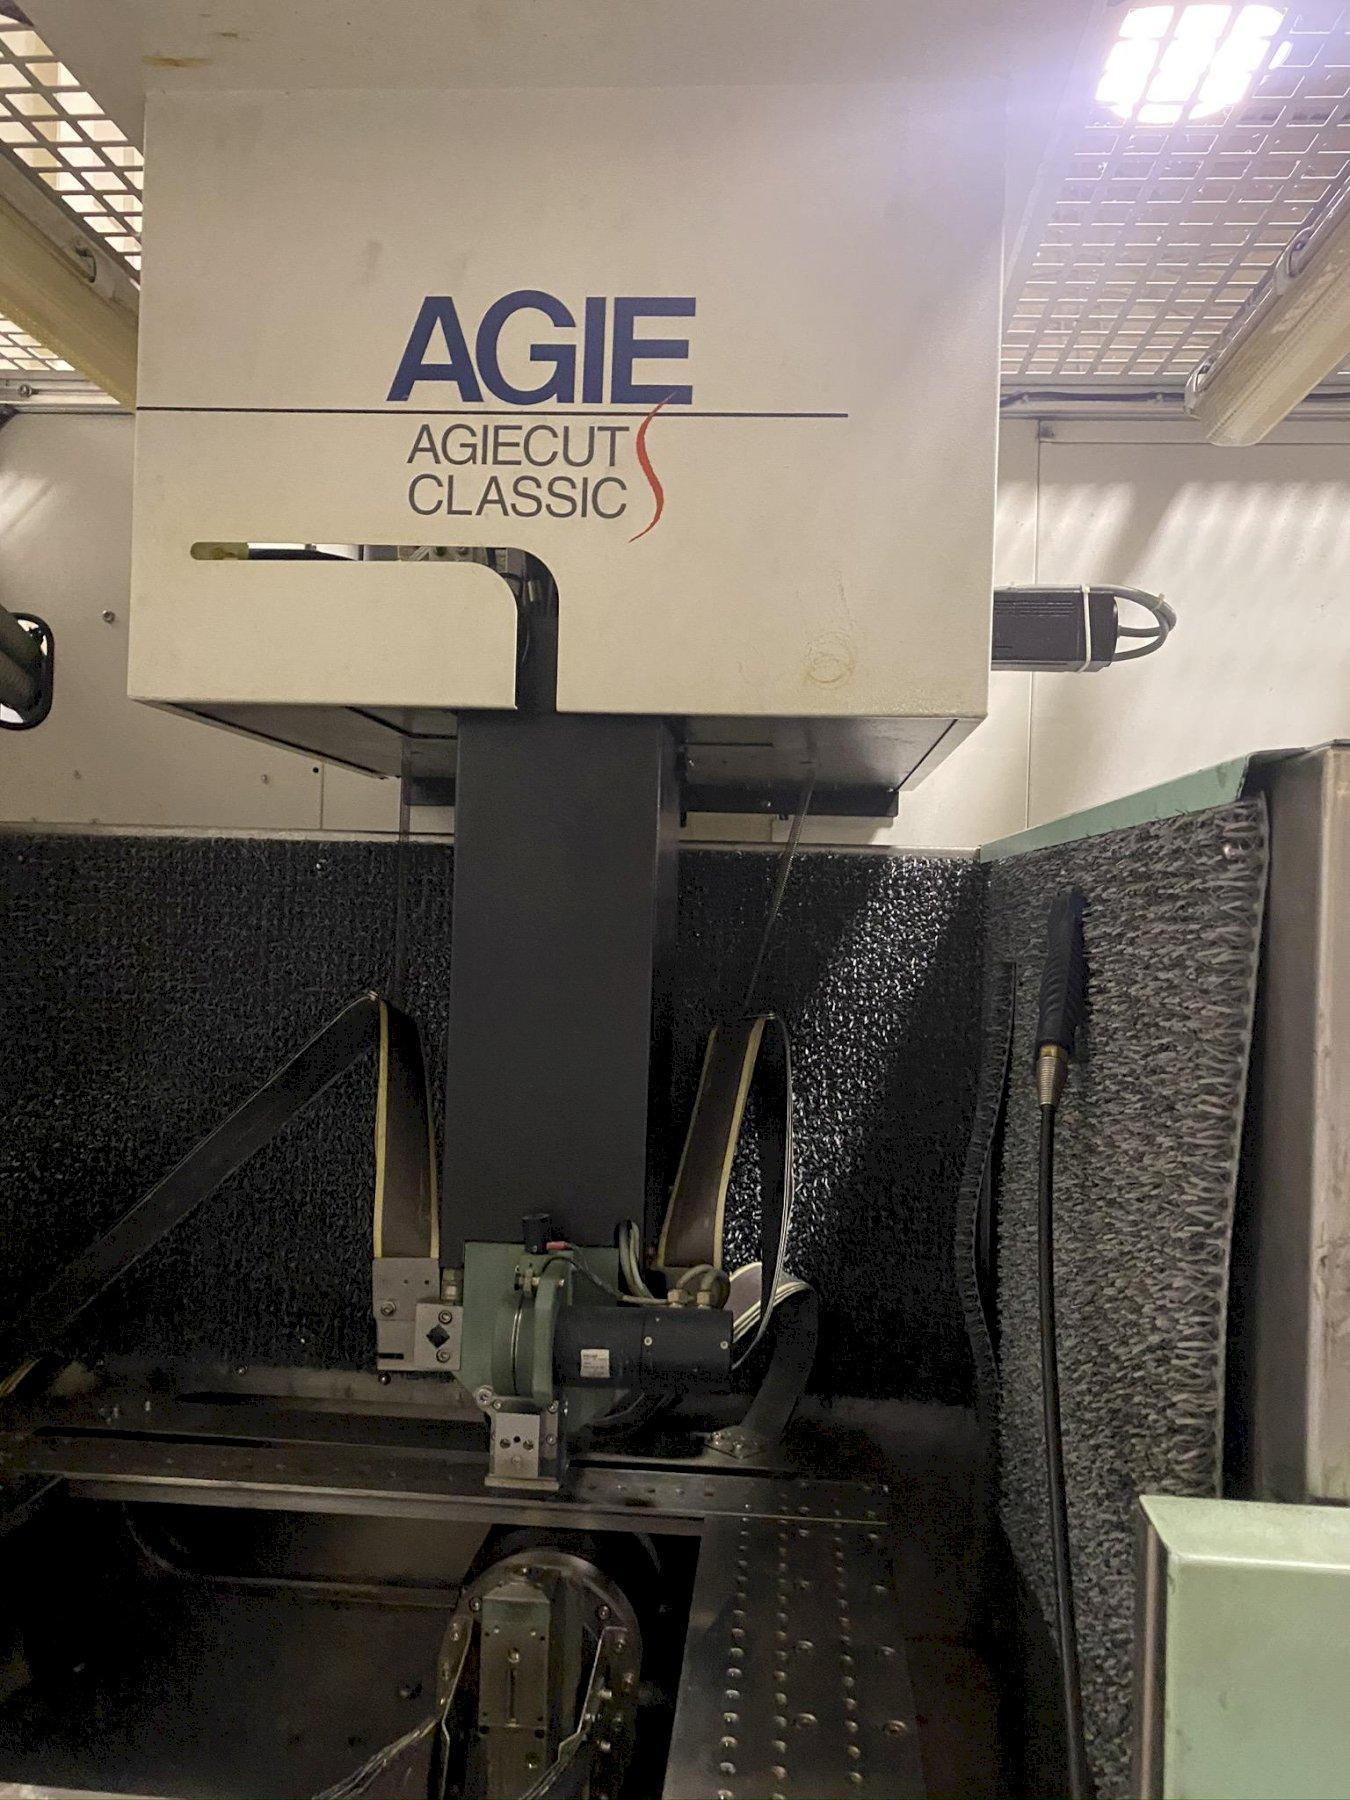 2003 AGIE CLASSIC 3S 4 AXIS WIRE EDM ELECTRICAL DISCHARGE MACHINE: STOCK 13633